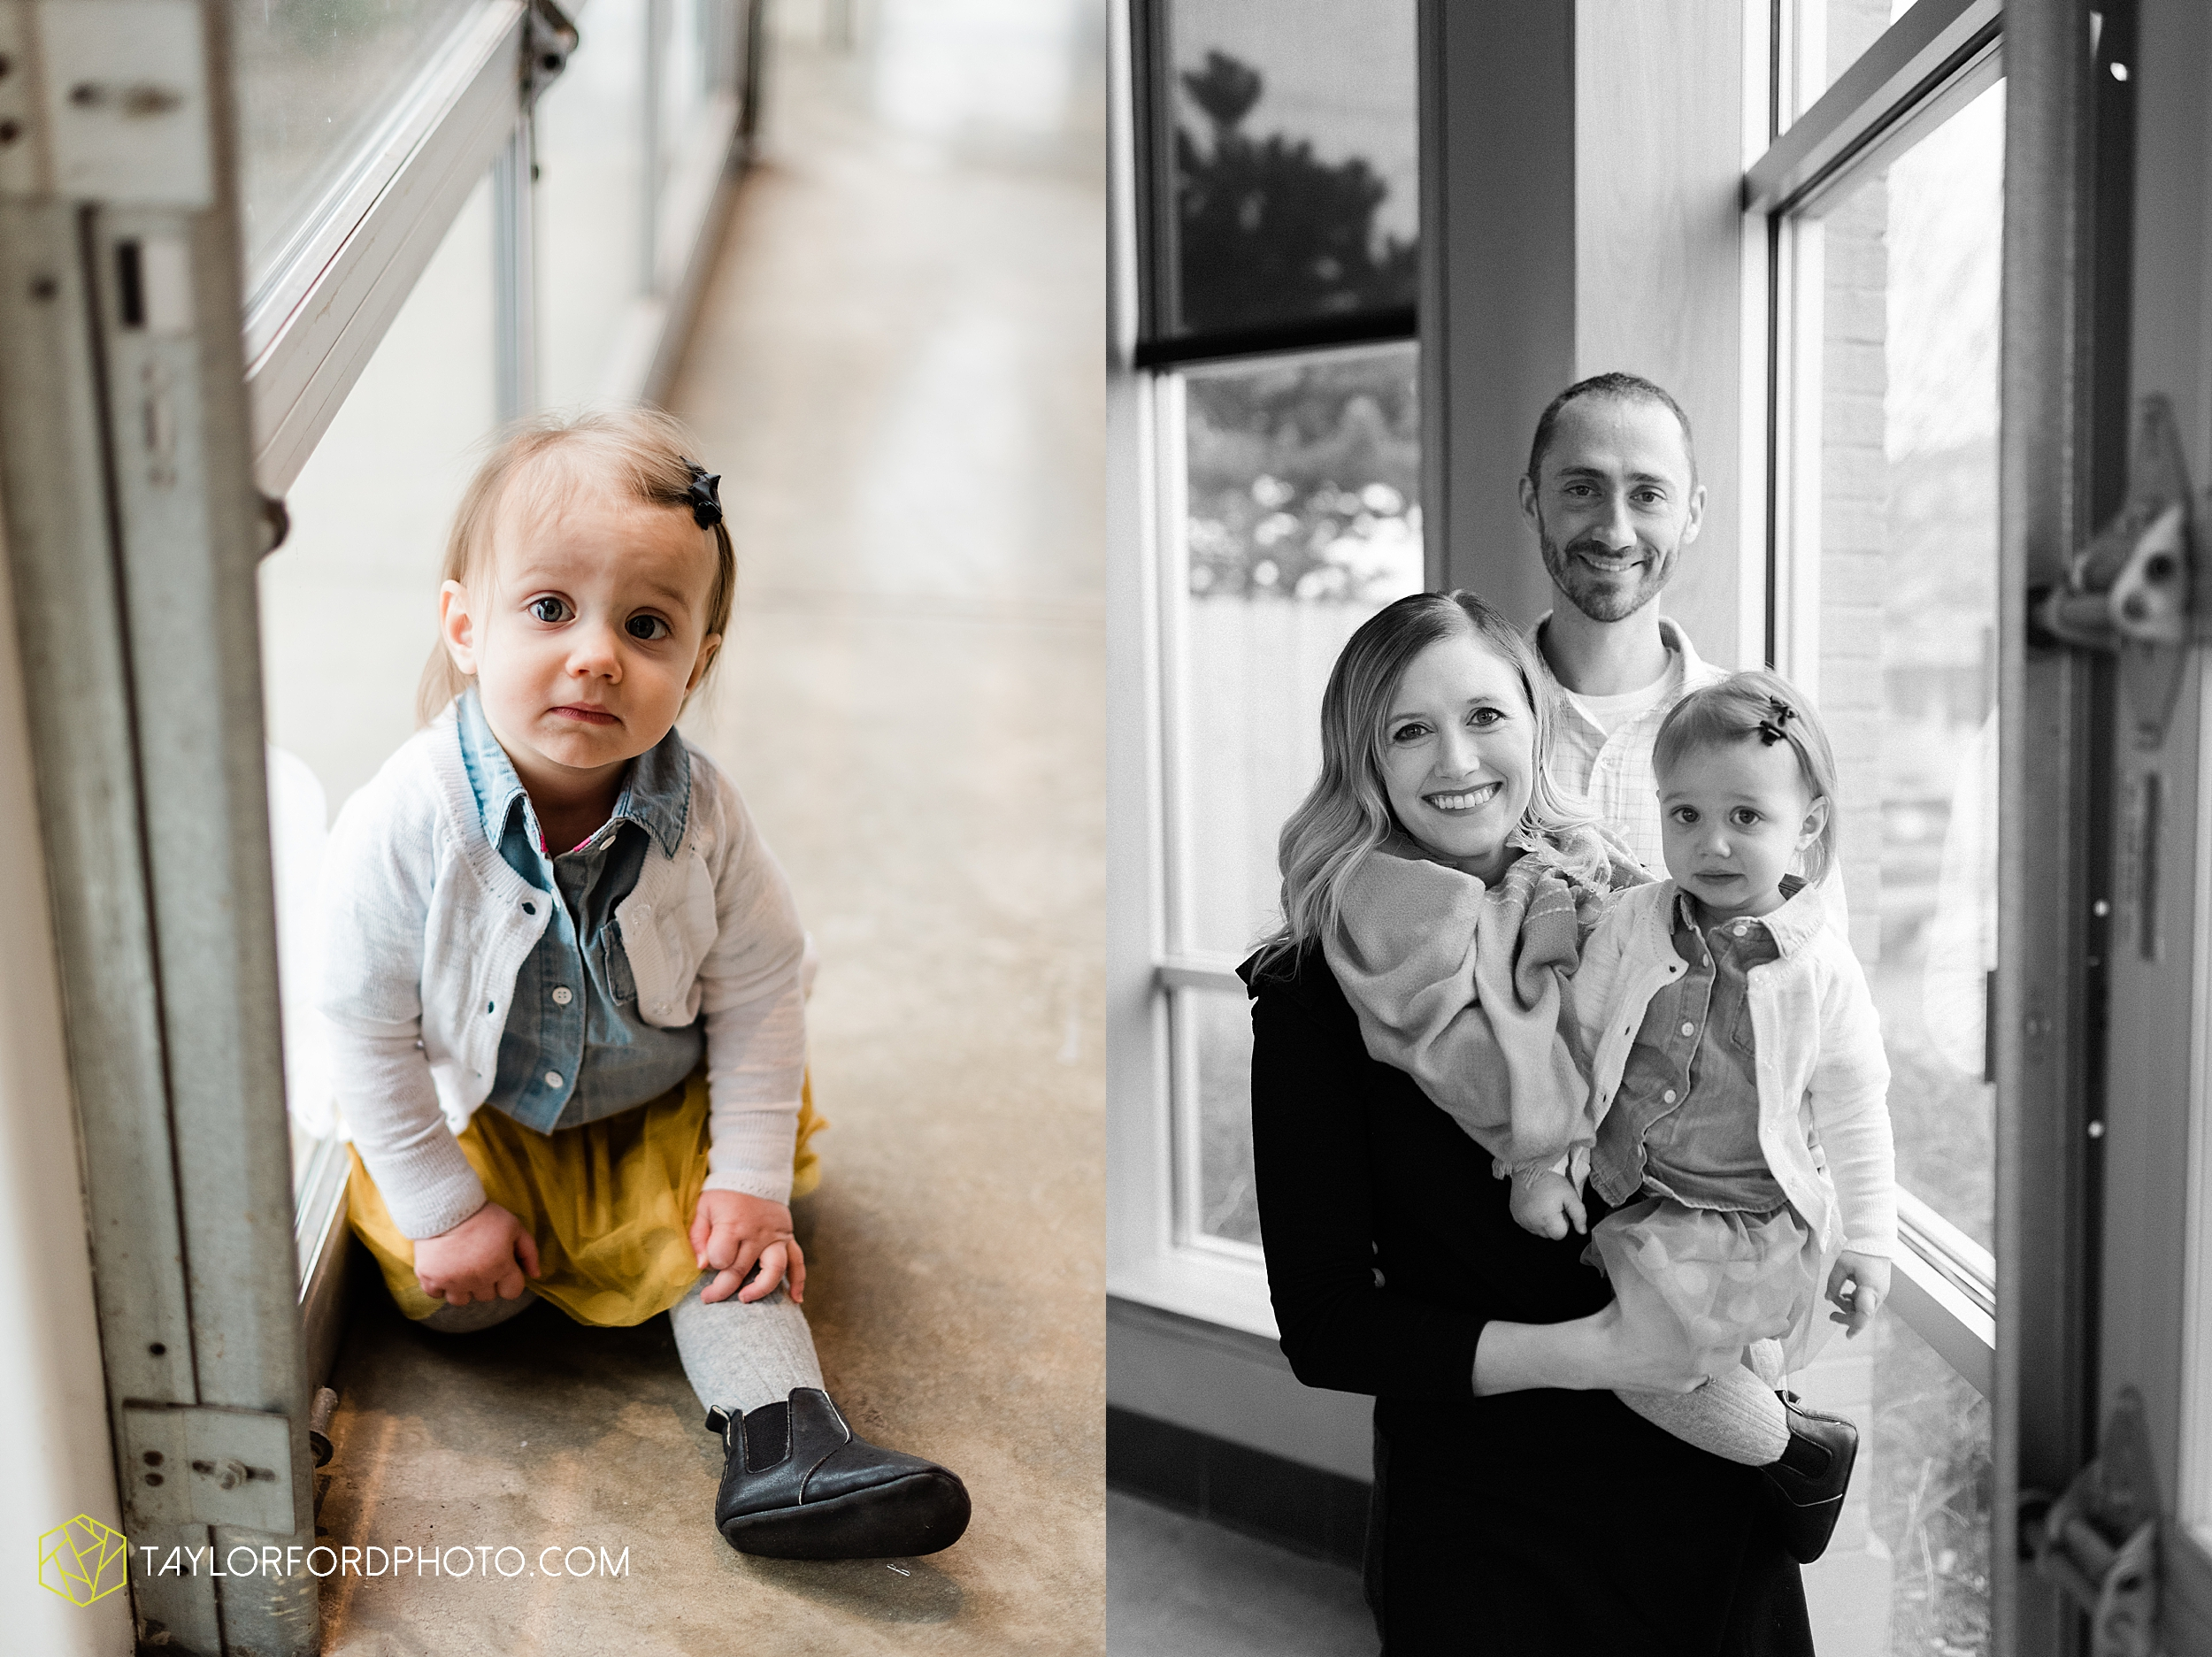 starbucks-one-1-year-old-brita-downtown-grand-wayne-at-home-family-fort-wayne-indiana-photography-taylor-ford-hirschy-photographer_2396.jpg